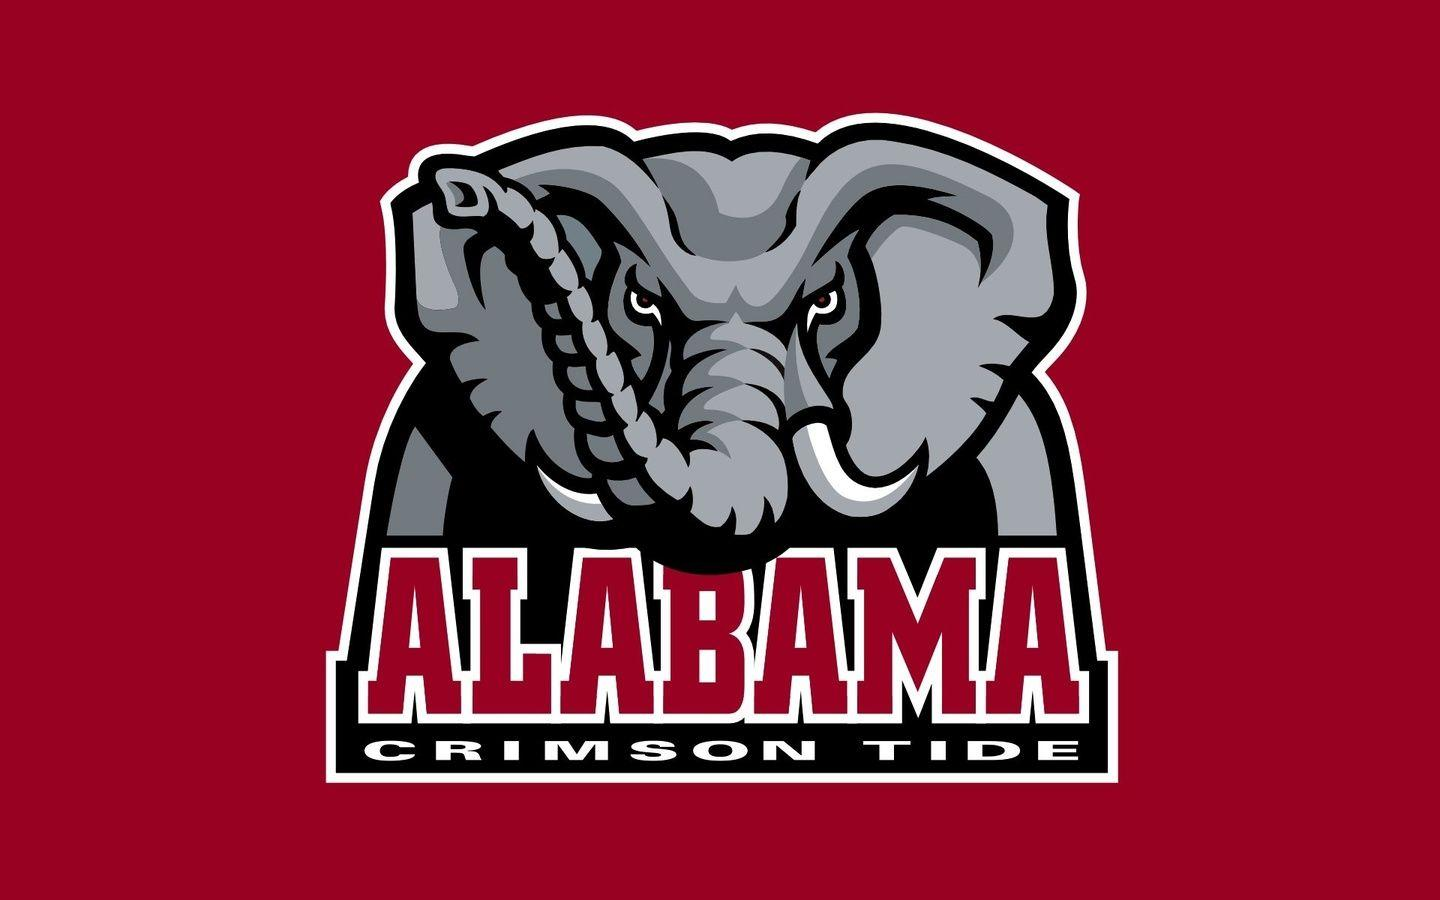 1440x900 Football, Alabama Football, College, Crimson Tide